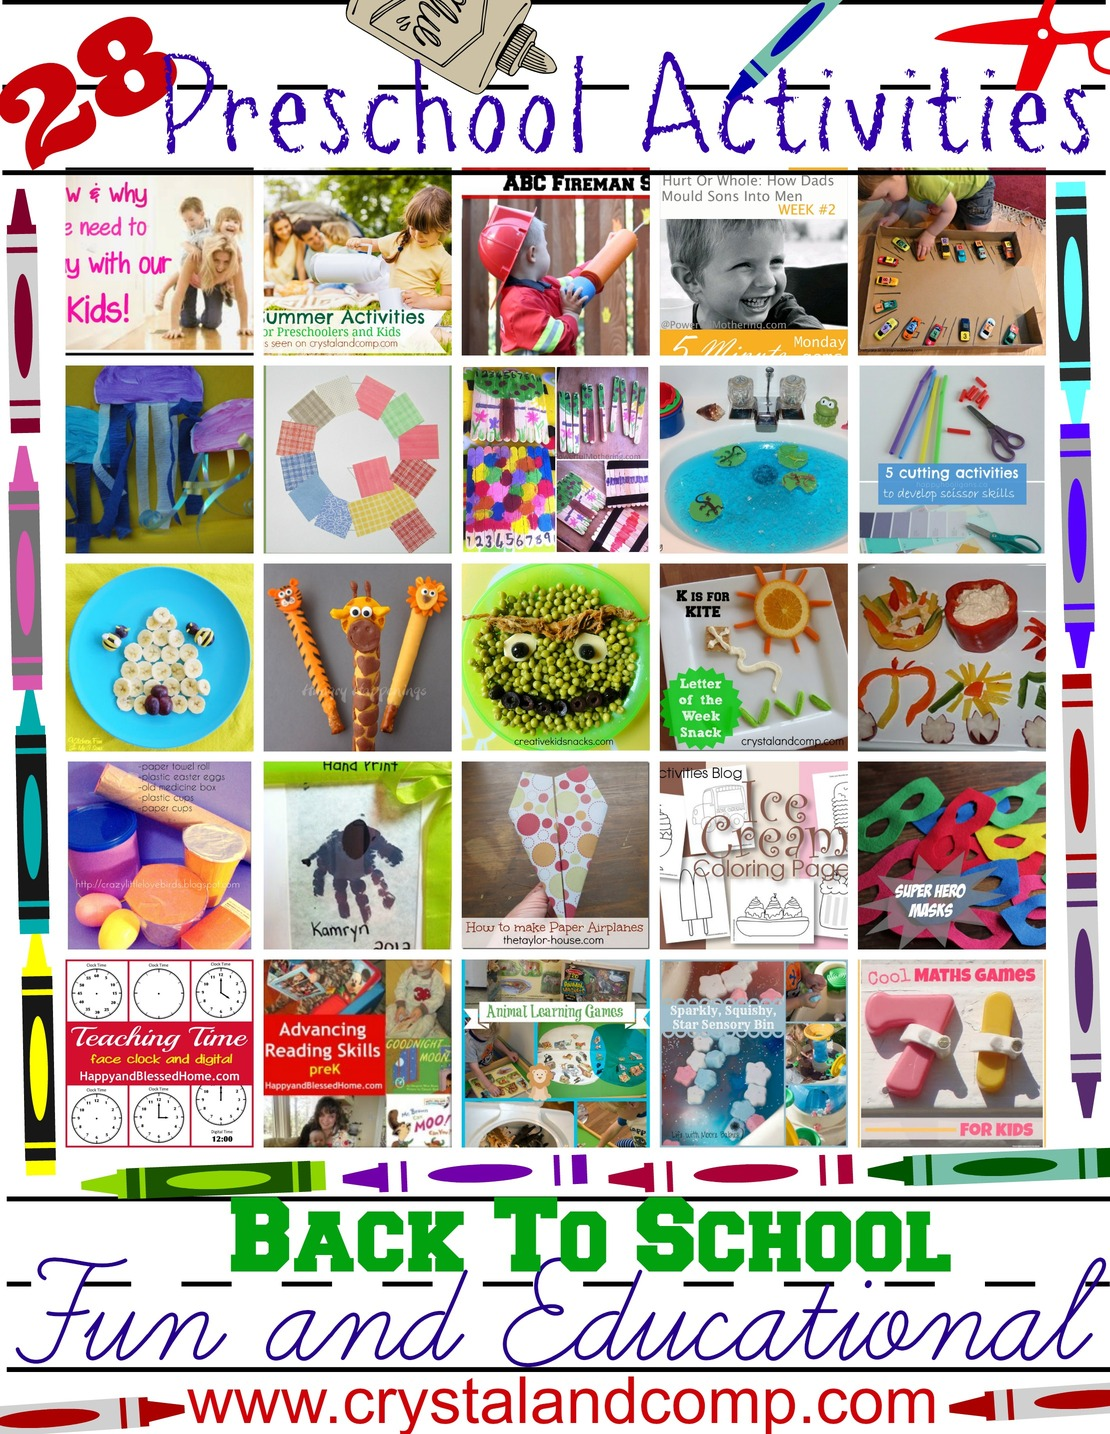 28 Fun And Educational Preschool Activities For Back To School